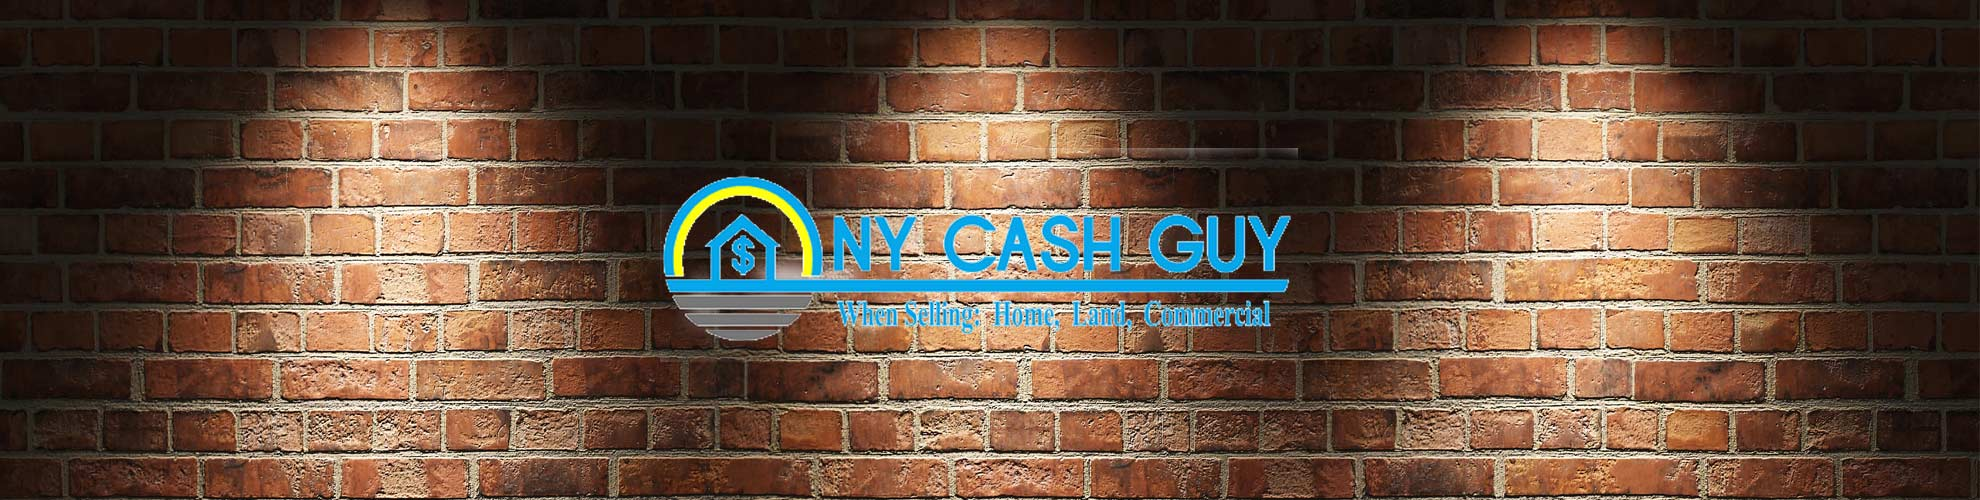 NY-CASH-GUY-on-Brick